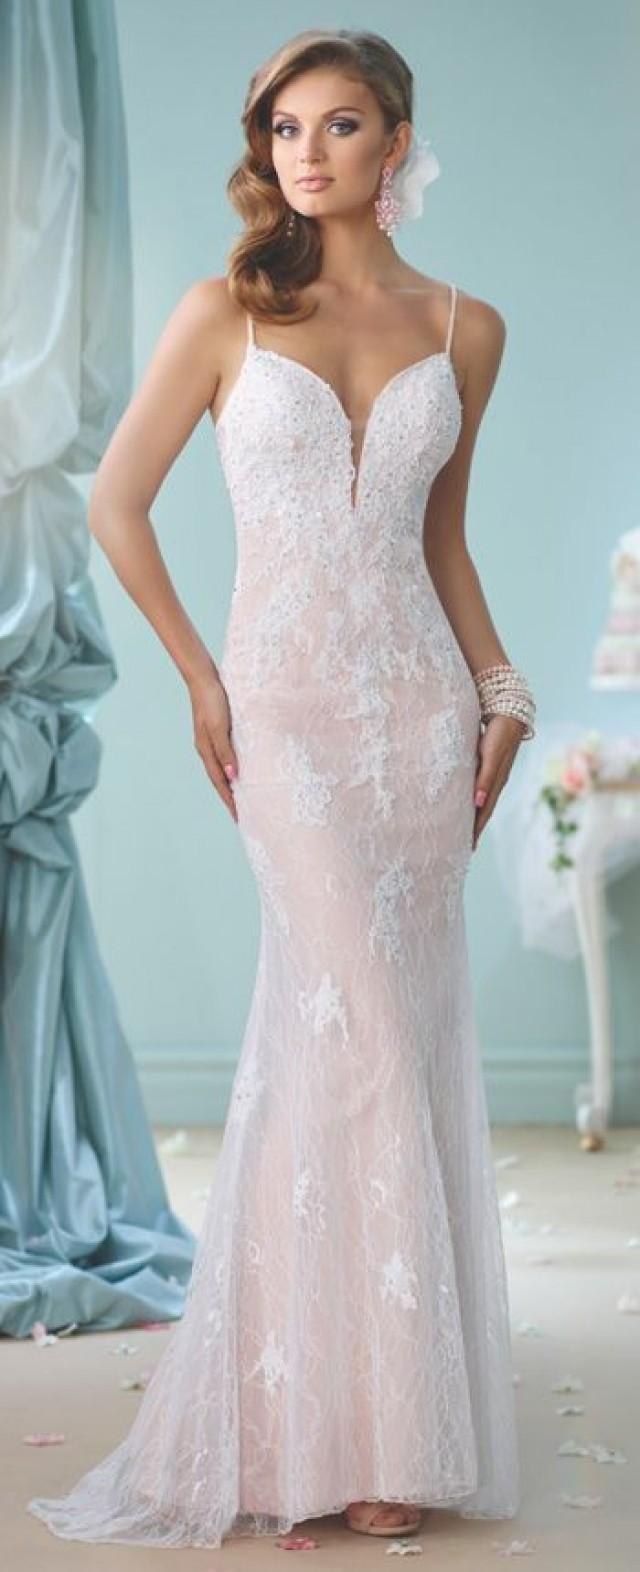 Dress - Modern Wedding Dresses 2018 By Mon Cheri #2825027 - Weddbook